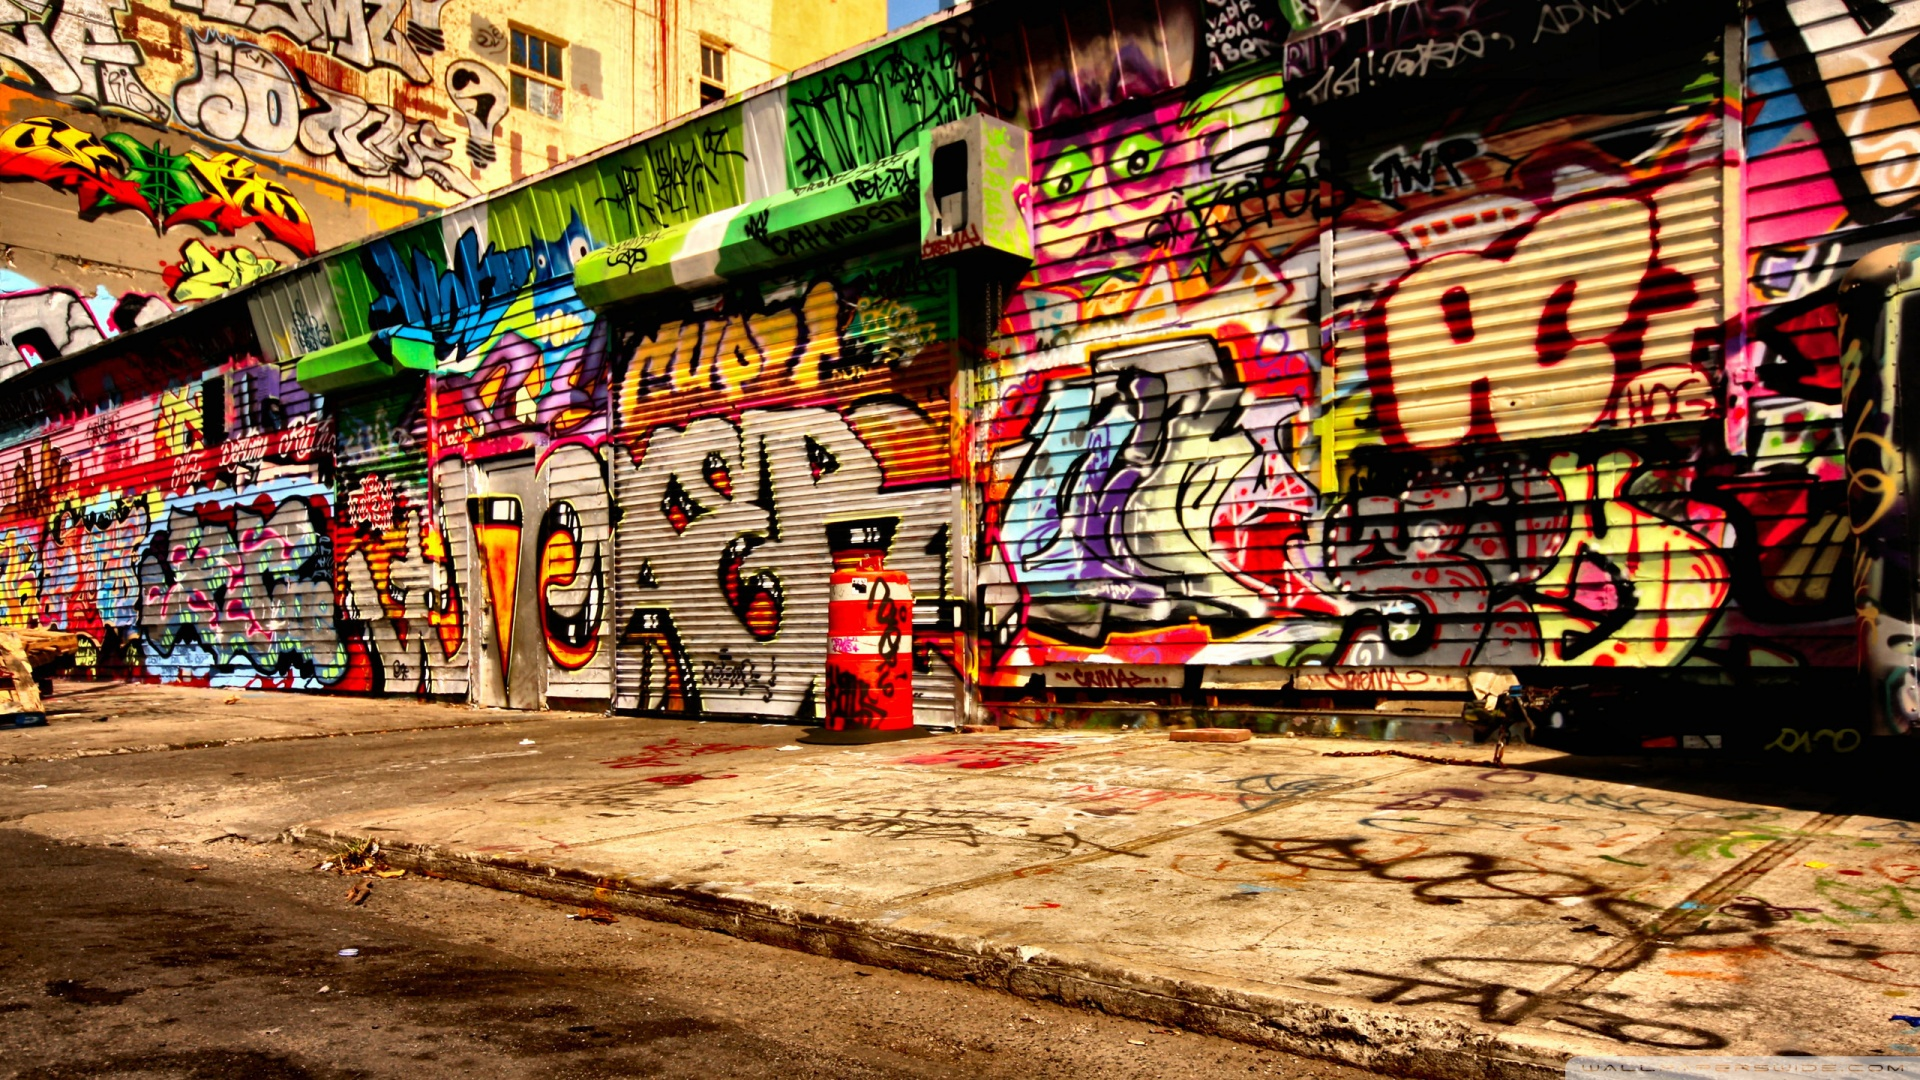 Graffiti Art On Walls Wallpaper 1920x1080 Graffiti Art On Walls 1920x1080